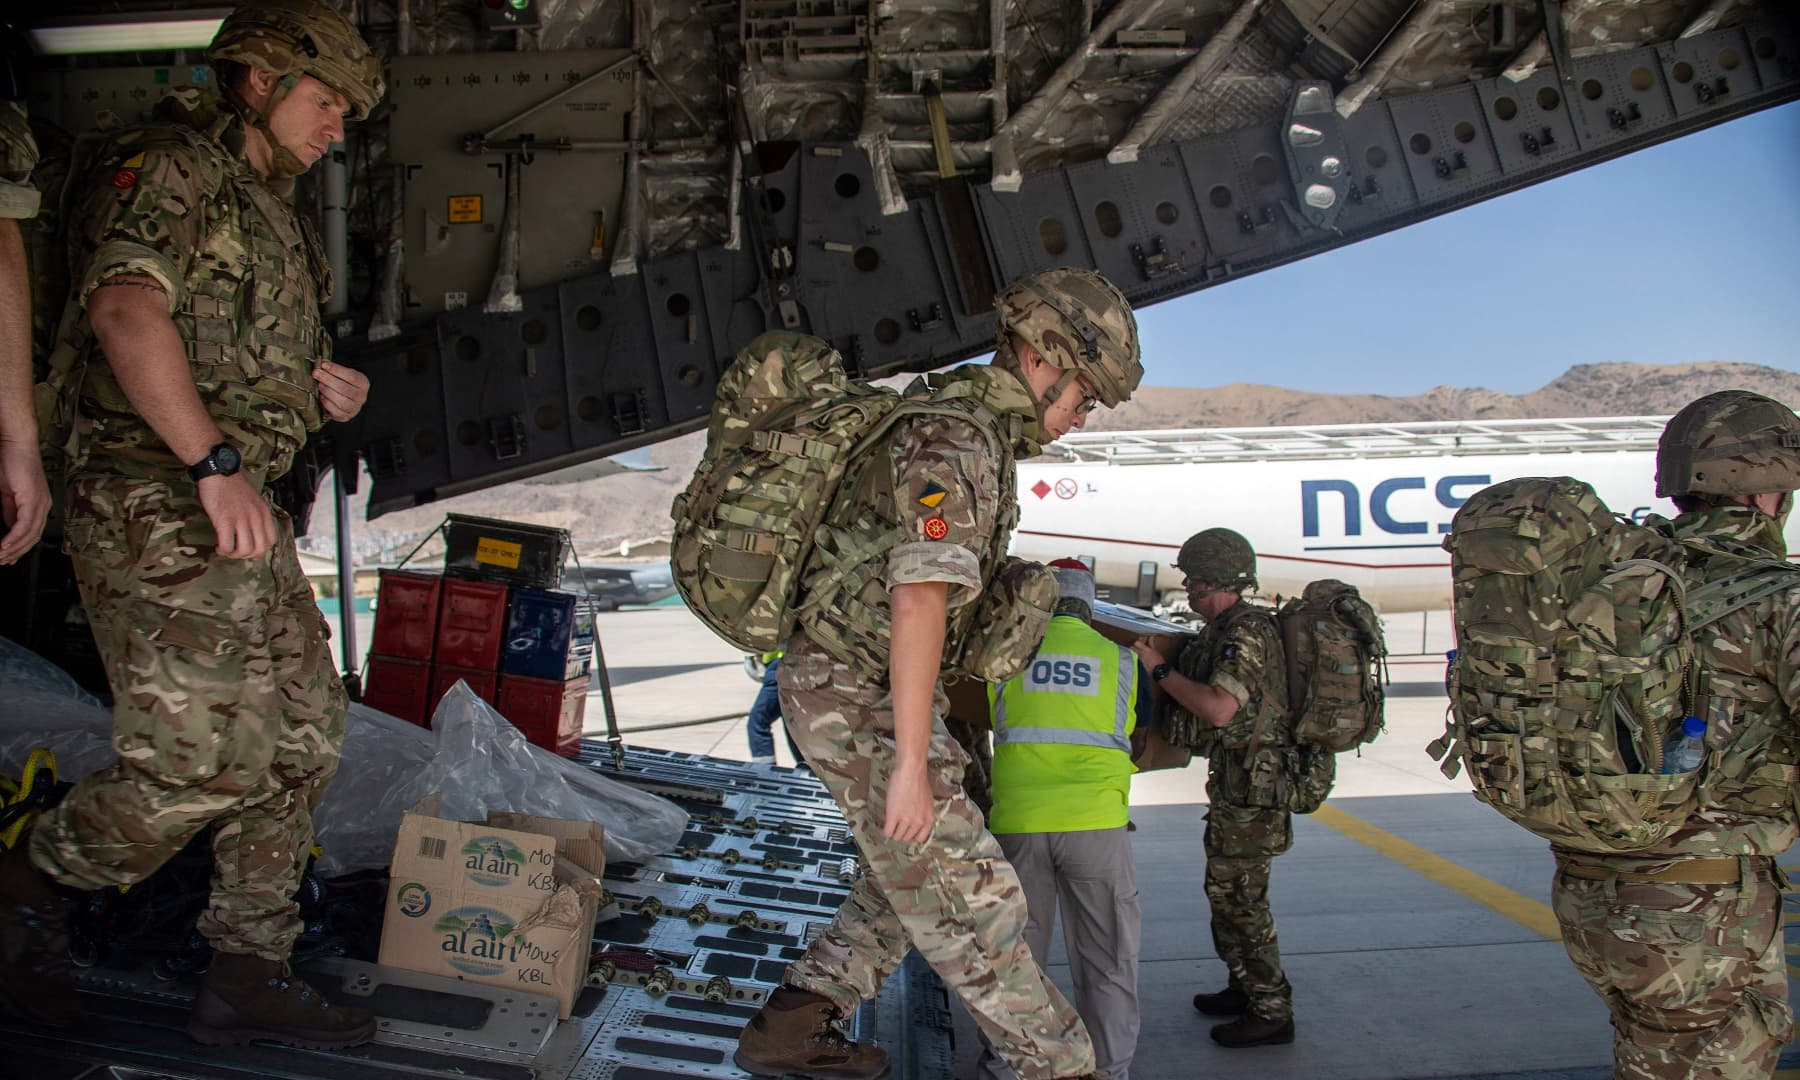 A handout picture taken and released by the British Ministry of Defence on August 15, 2021, shows members of the British Army, from 16 Air Assault Brigade, as they disembark from an RAF Voyager aircraft after landing in Kabul, Afghanistan, to assist in evacuating British nationals and entitled persons as part of Operation PITTING. — AFP